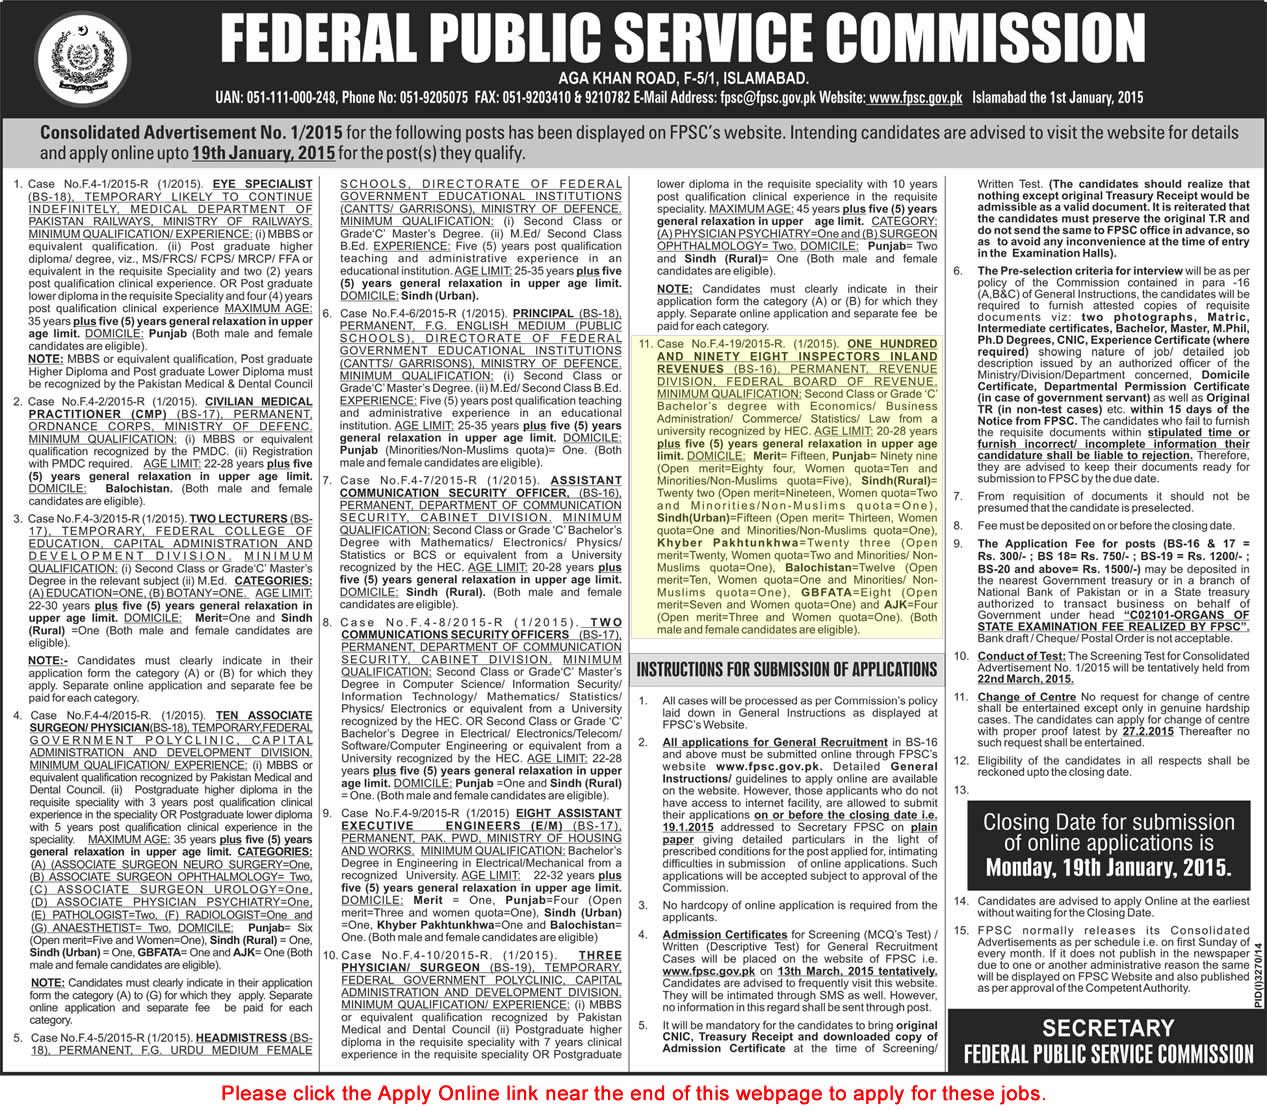 New Inspectors Inland Revenue Job in FPSC Federal Public Service Commission January 2015 Online